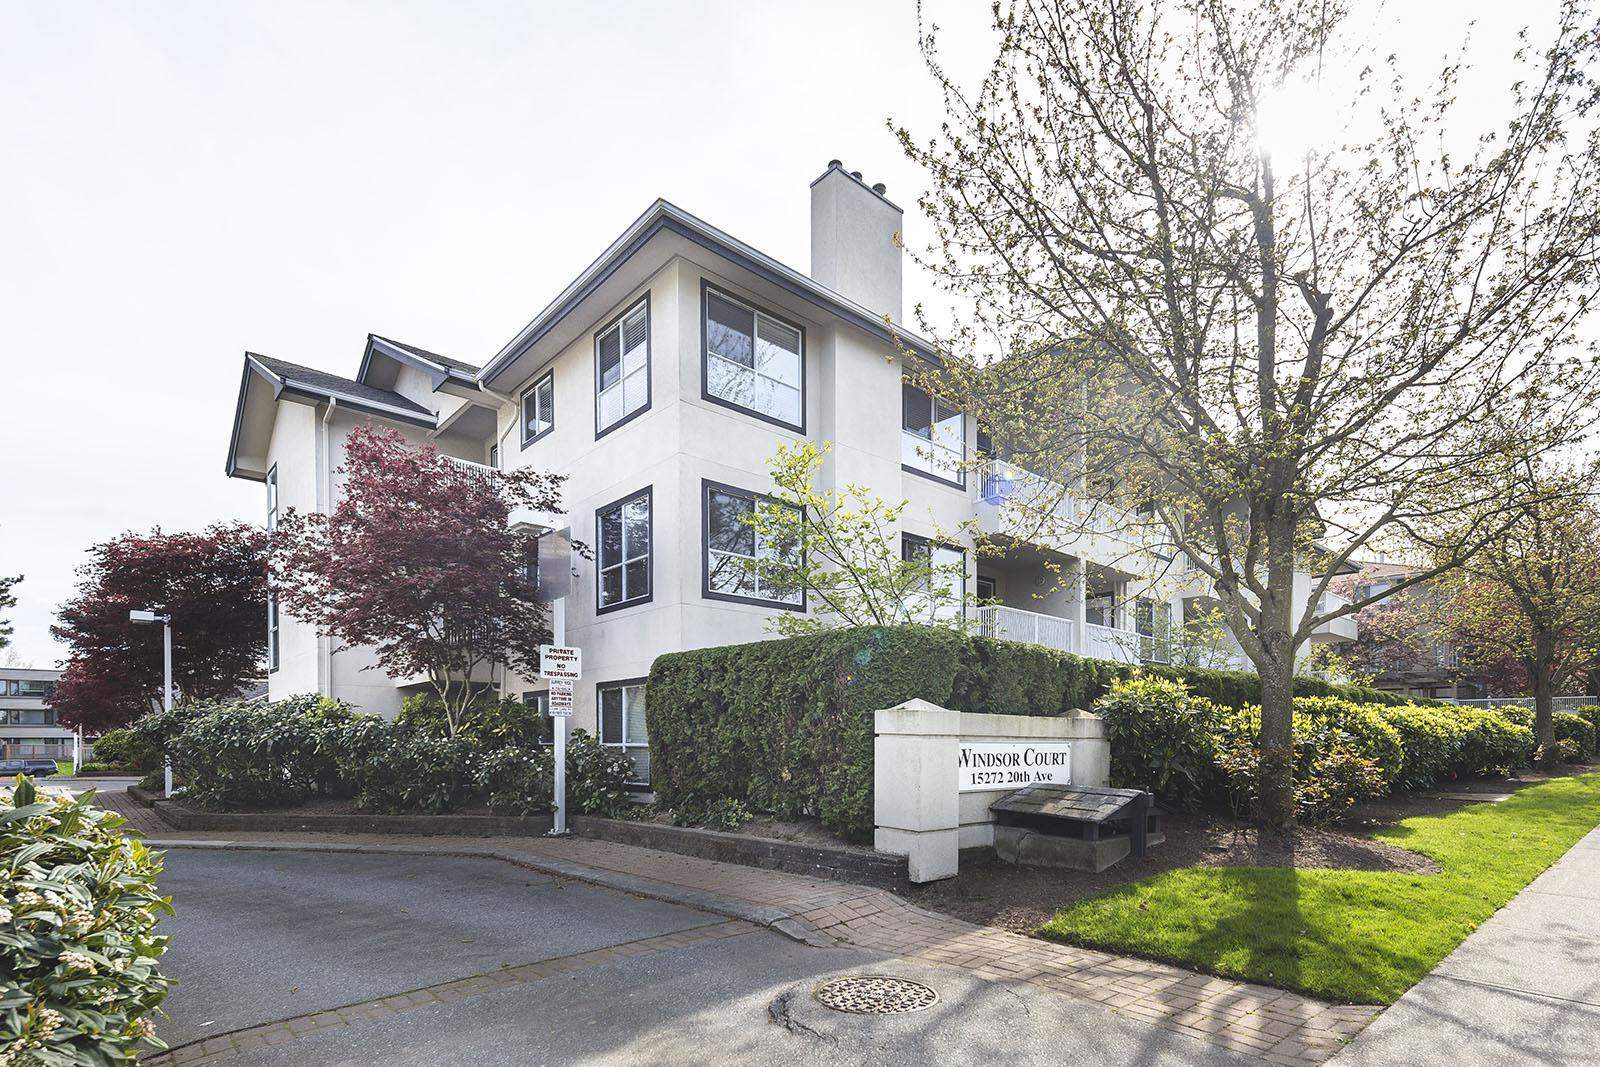 Windsor Court at 15272 20 Ave, Surrey 0